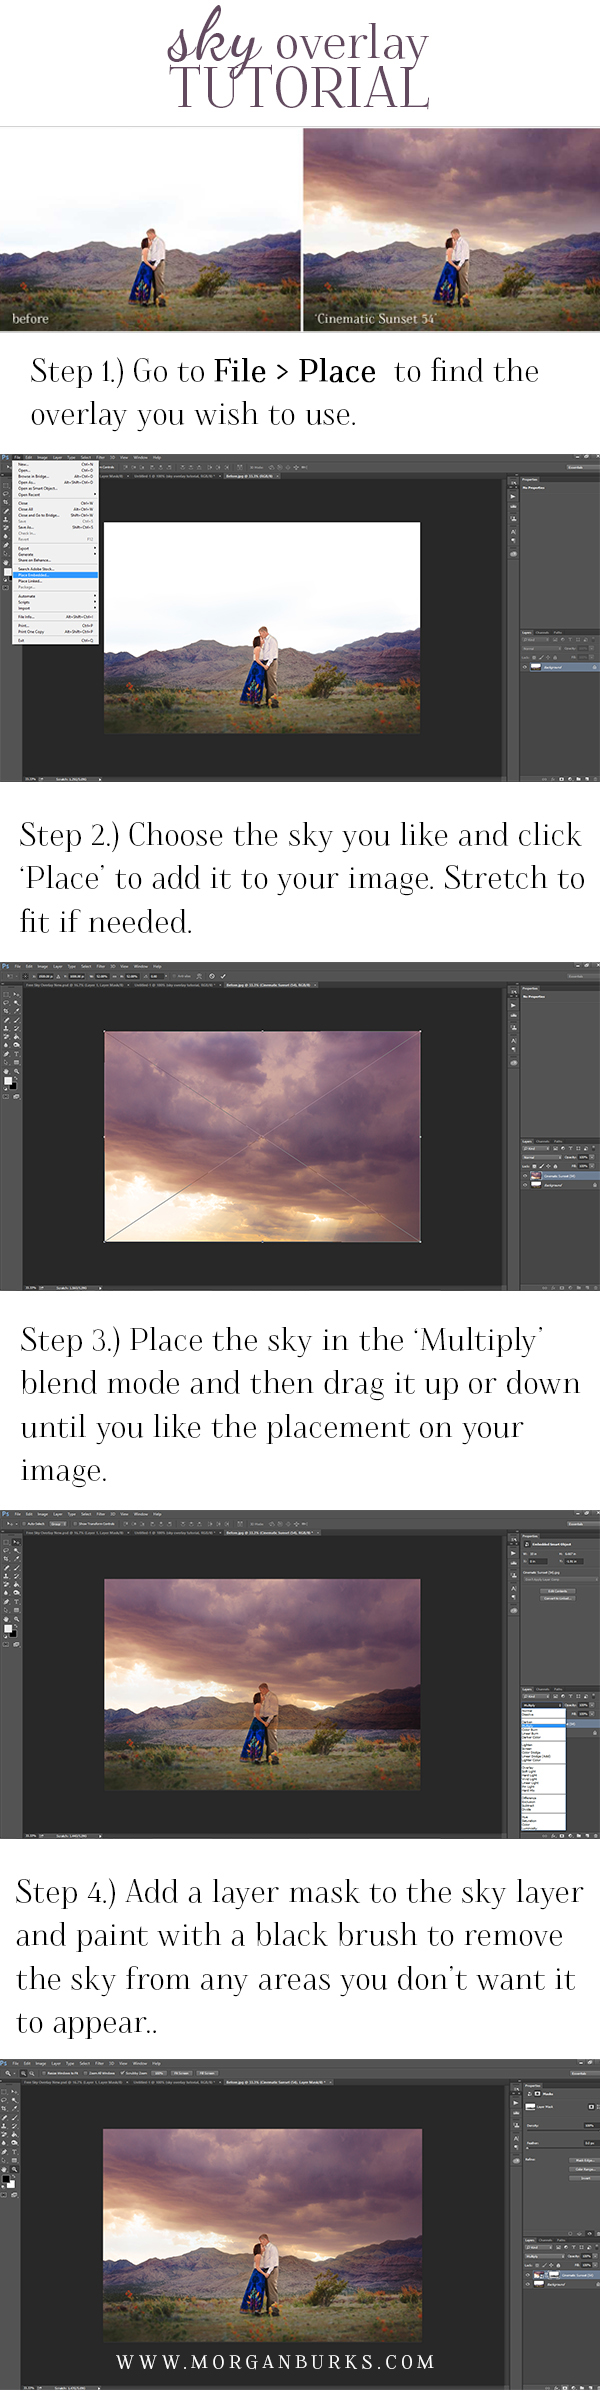 This sky overlay tutorial will show you step by step how to apply Sky Overlays in Photoshop. | Find more free tutorials + editing products at www.morganburks.com